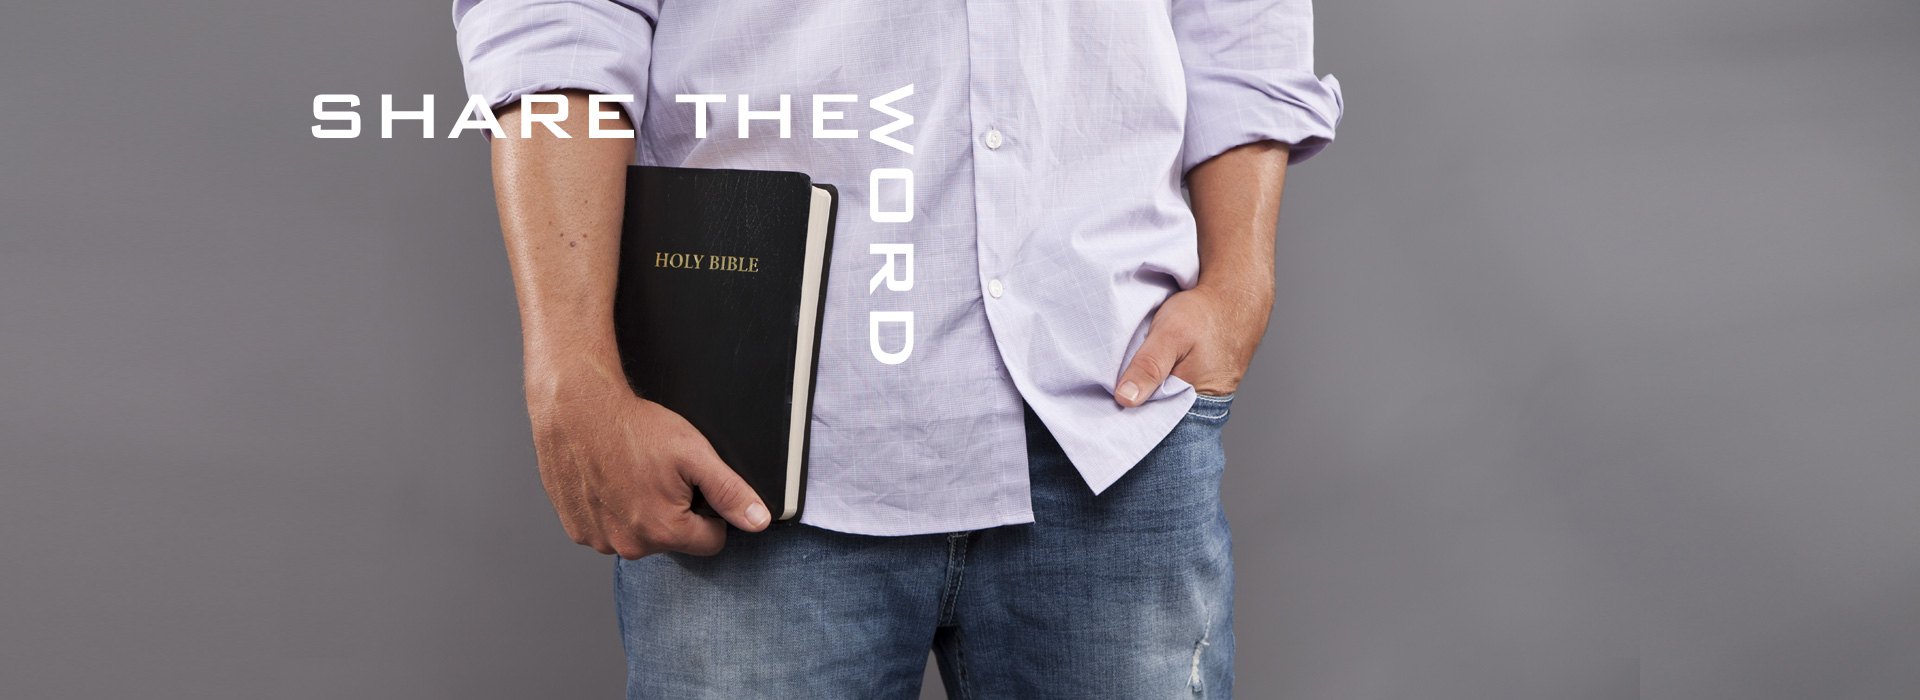 Share the Word of God